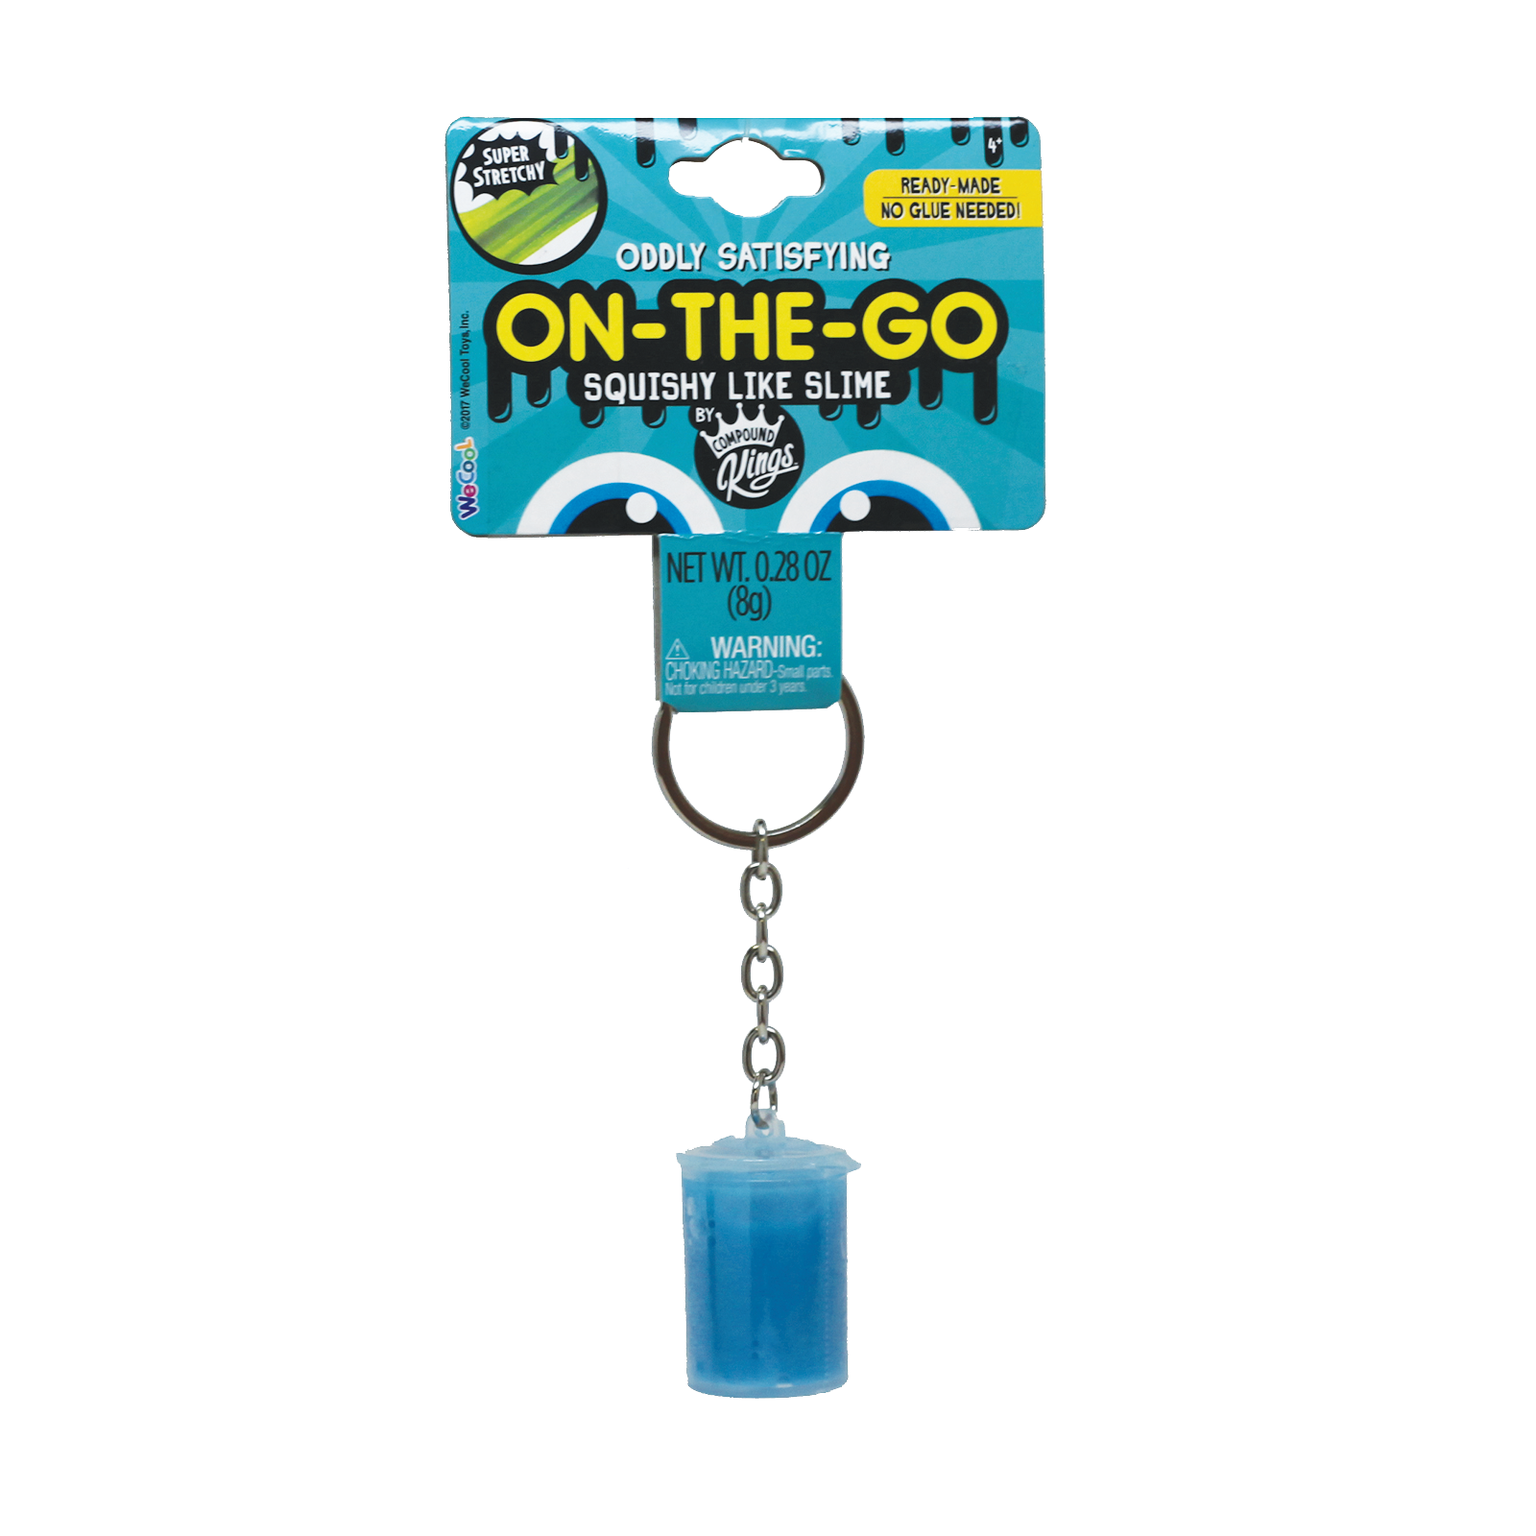 On-The-Go Squishy Like Slime Blue Keychain Container by Compound Kings